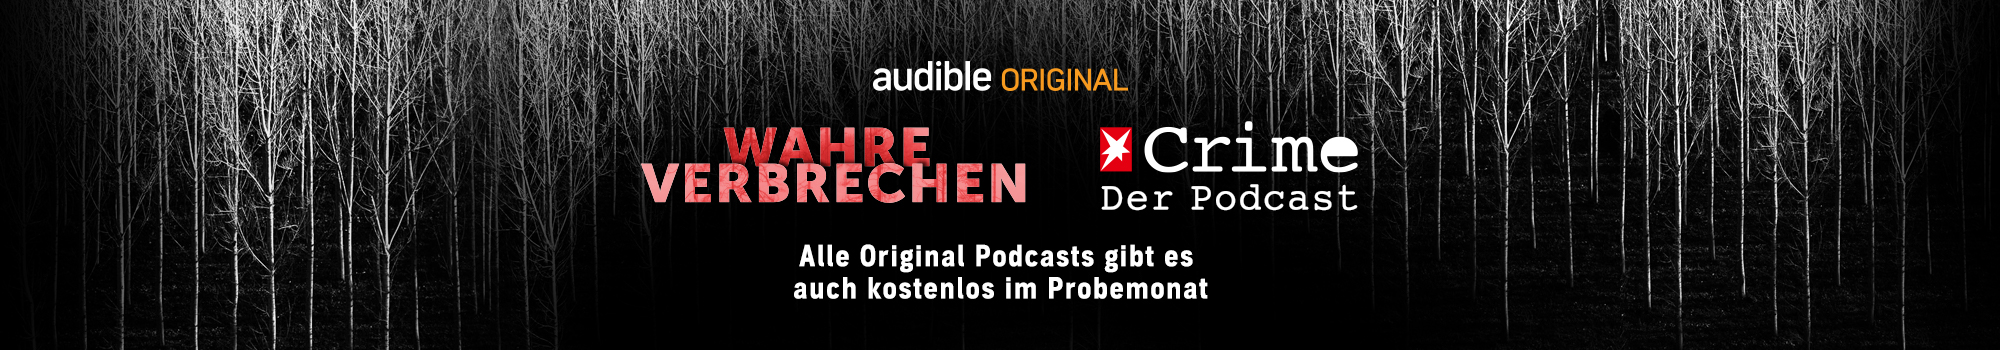 Audible Original Podcast - Wahre Verbrechen Stern Crime